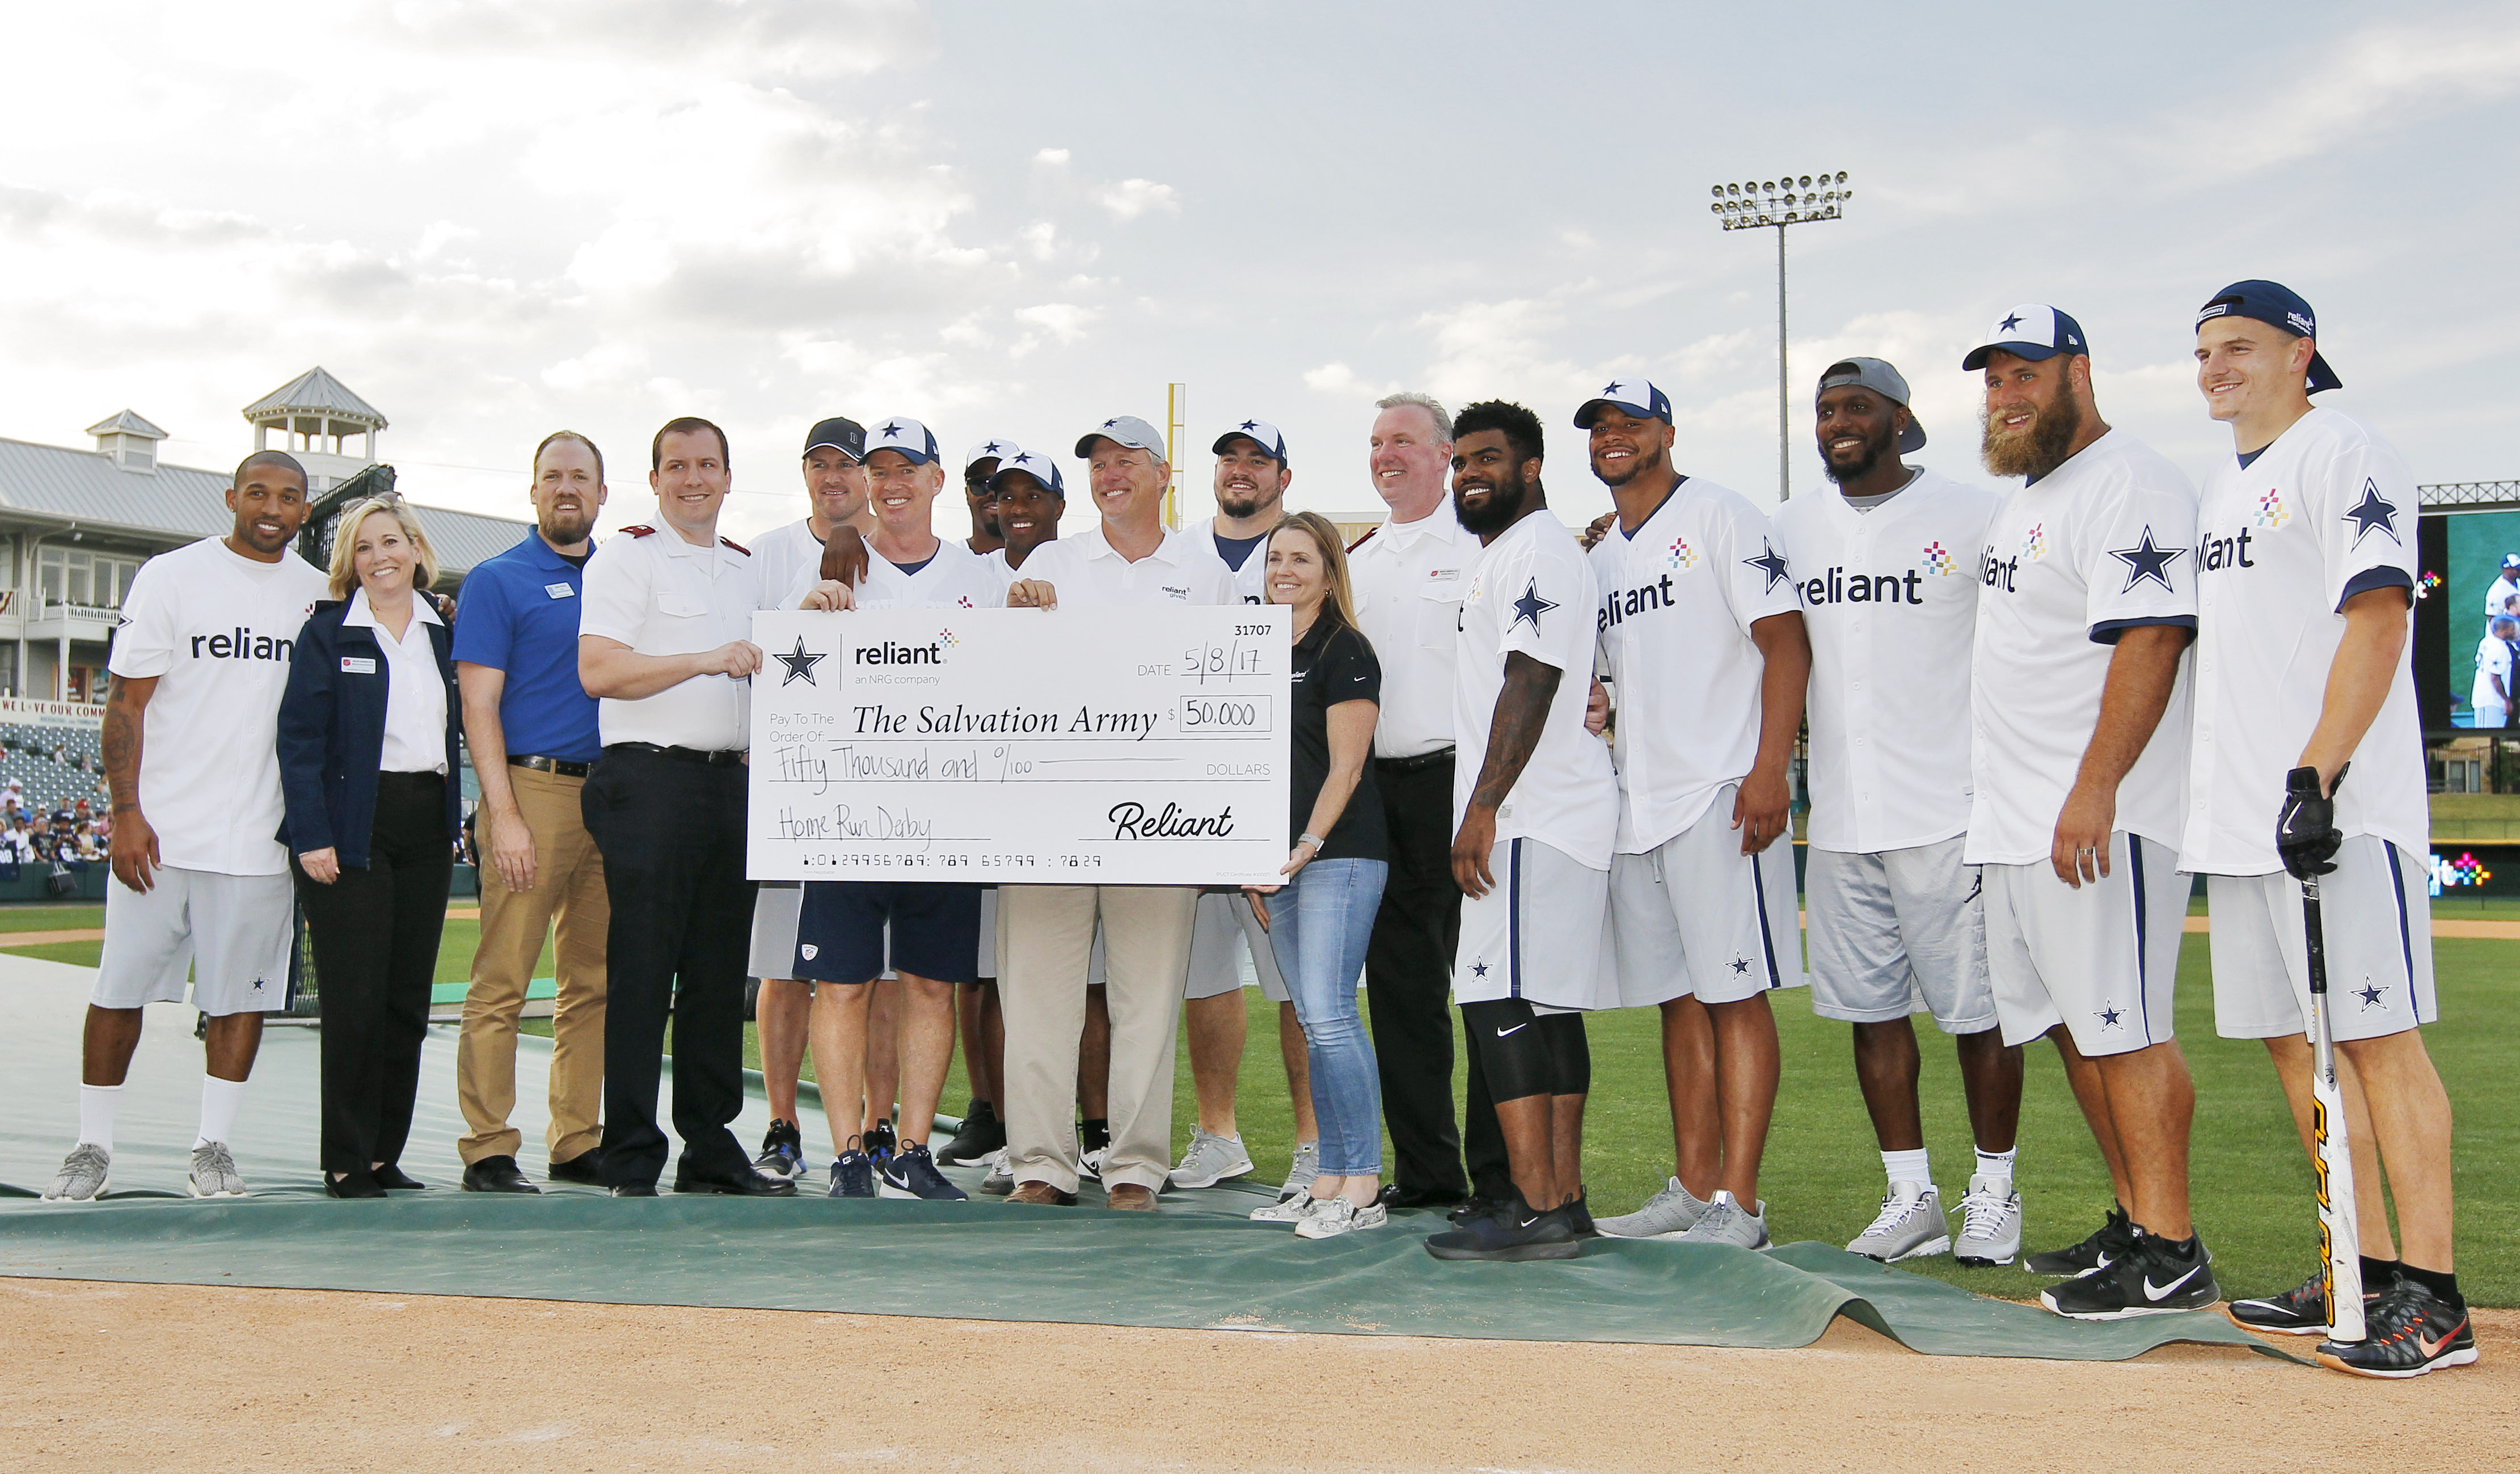 Reliant and the Dallas Cowboys present a check for $50,000 to The Salvation Army at the 2017 Reliant Home Run Derby in Frisco, Texas. (Photo: Business Wire)